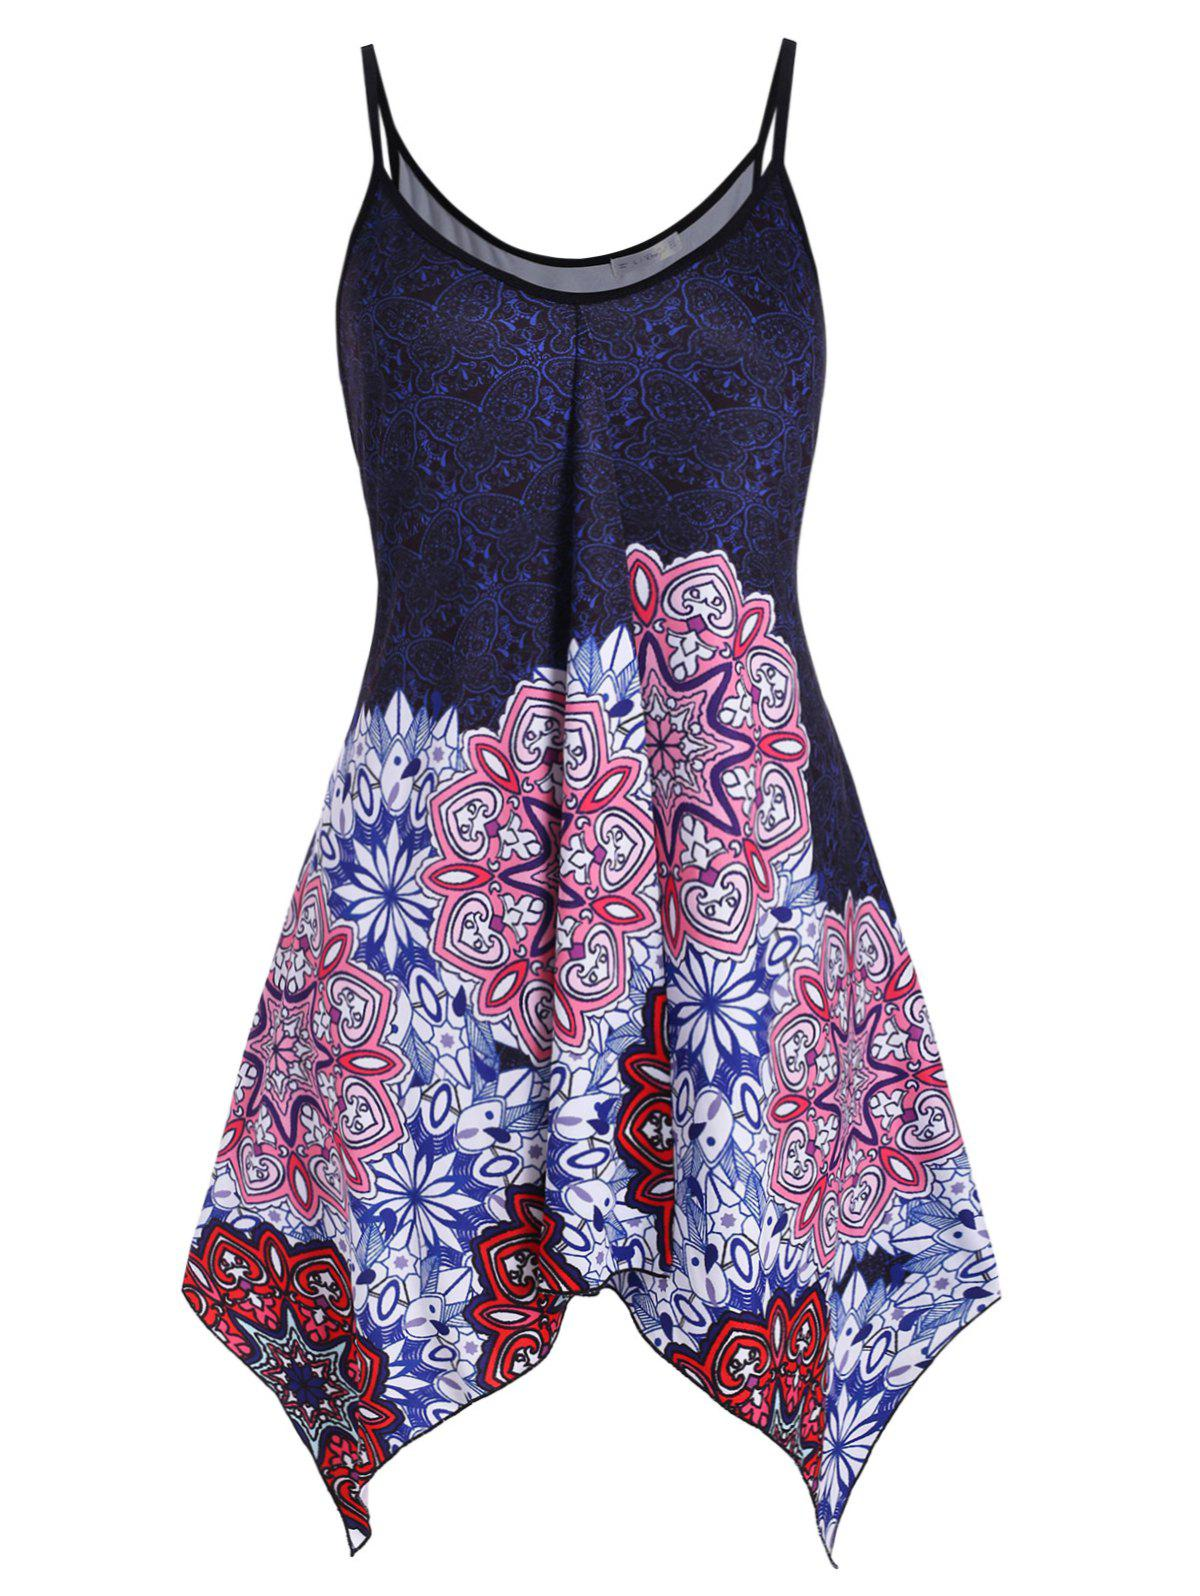 Butterfly Printed Handkerchief Longline Plus Size Cami Top - BLUE 5X